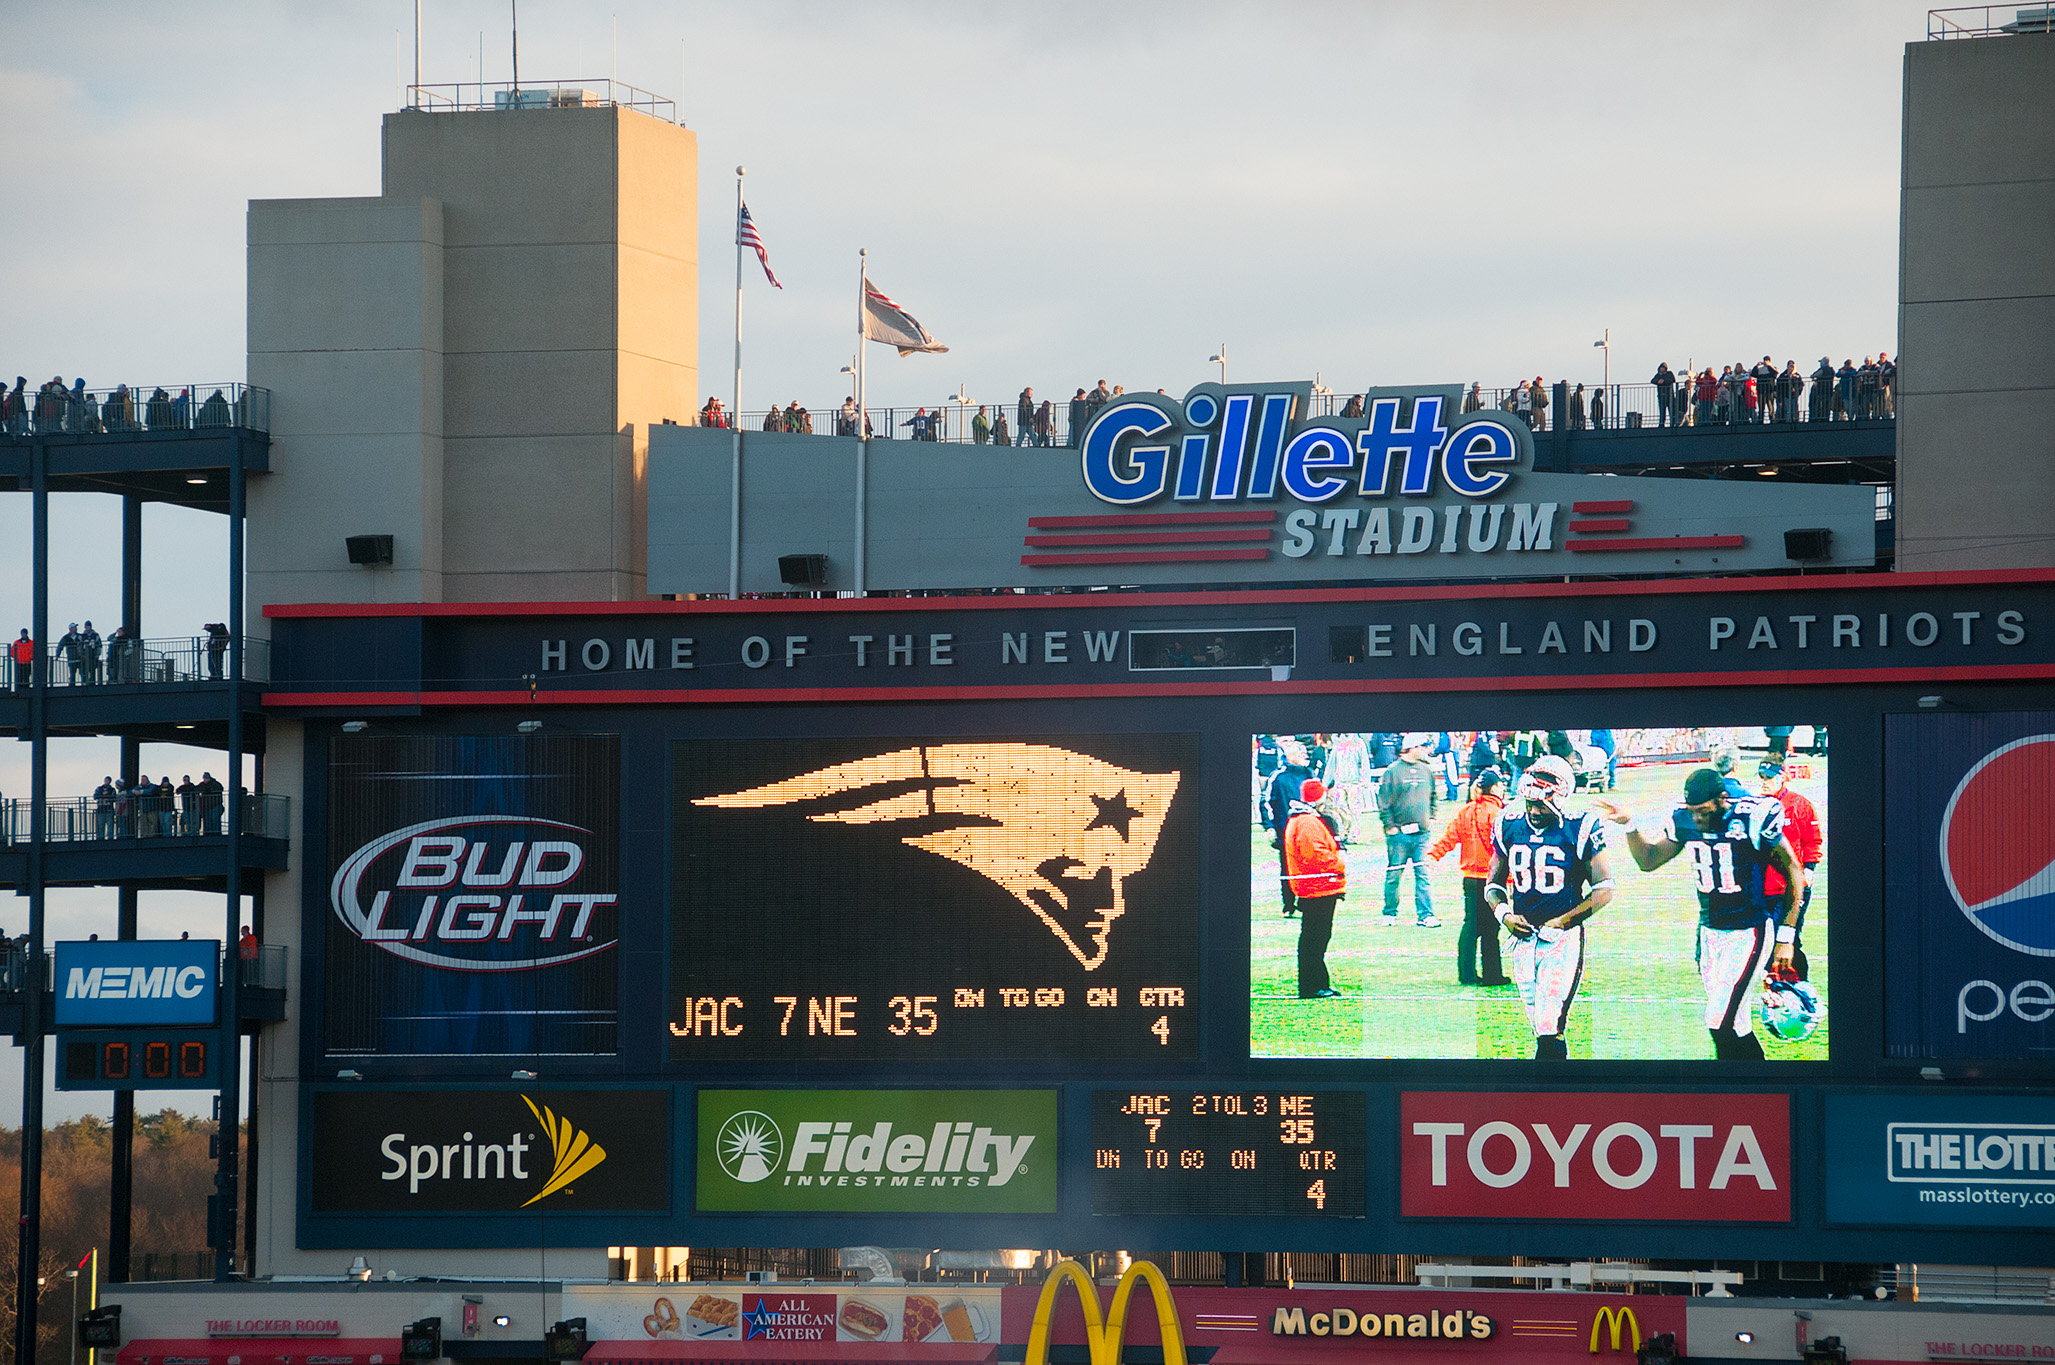 Even without a ticket to a game, a visit to Patriots place will allow you to see inside the very open Gillette Stadium where the patriots play.